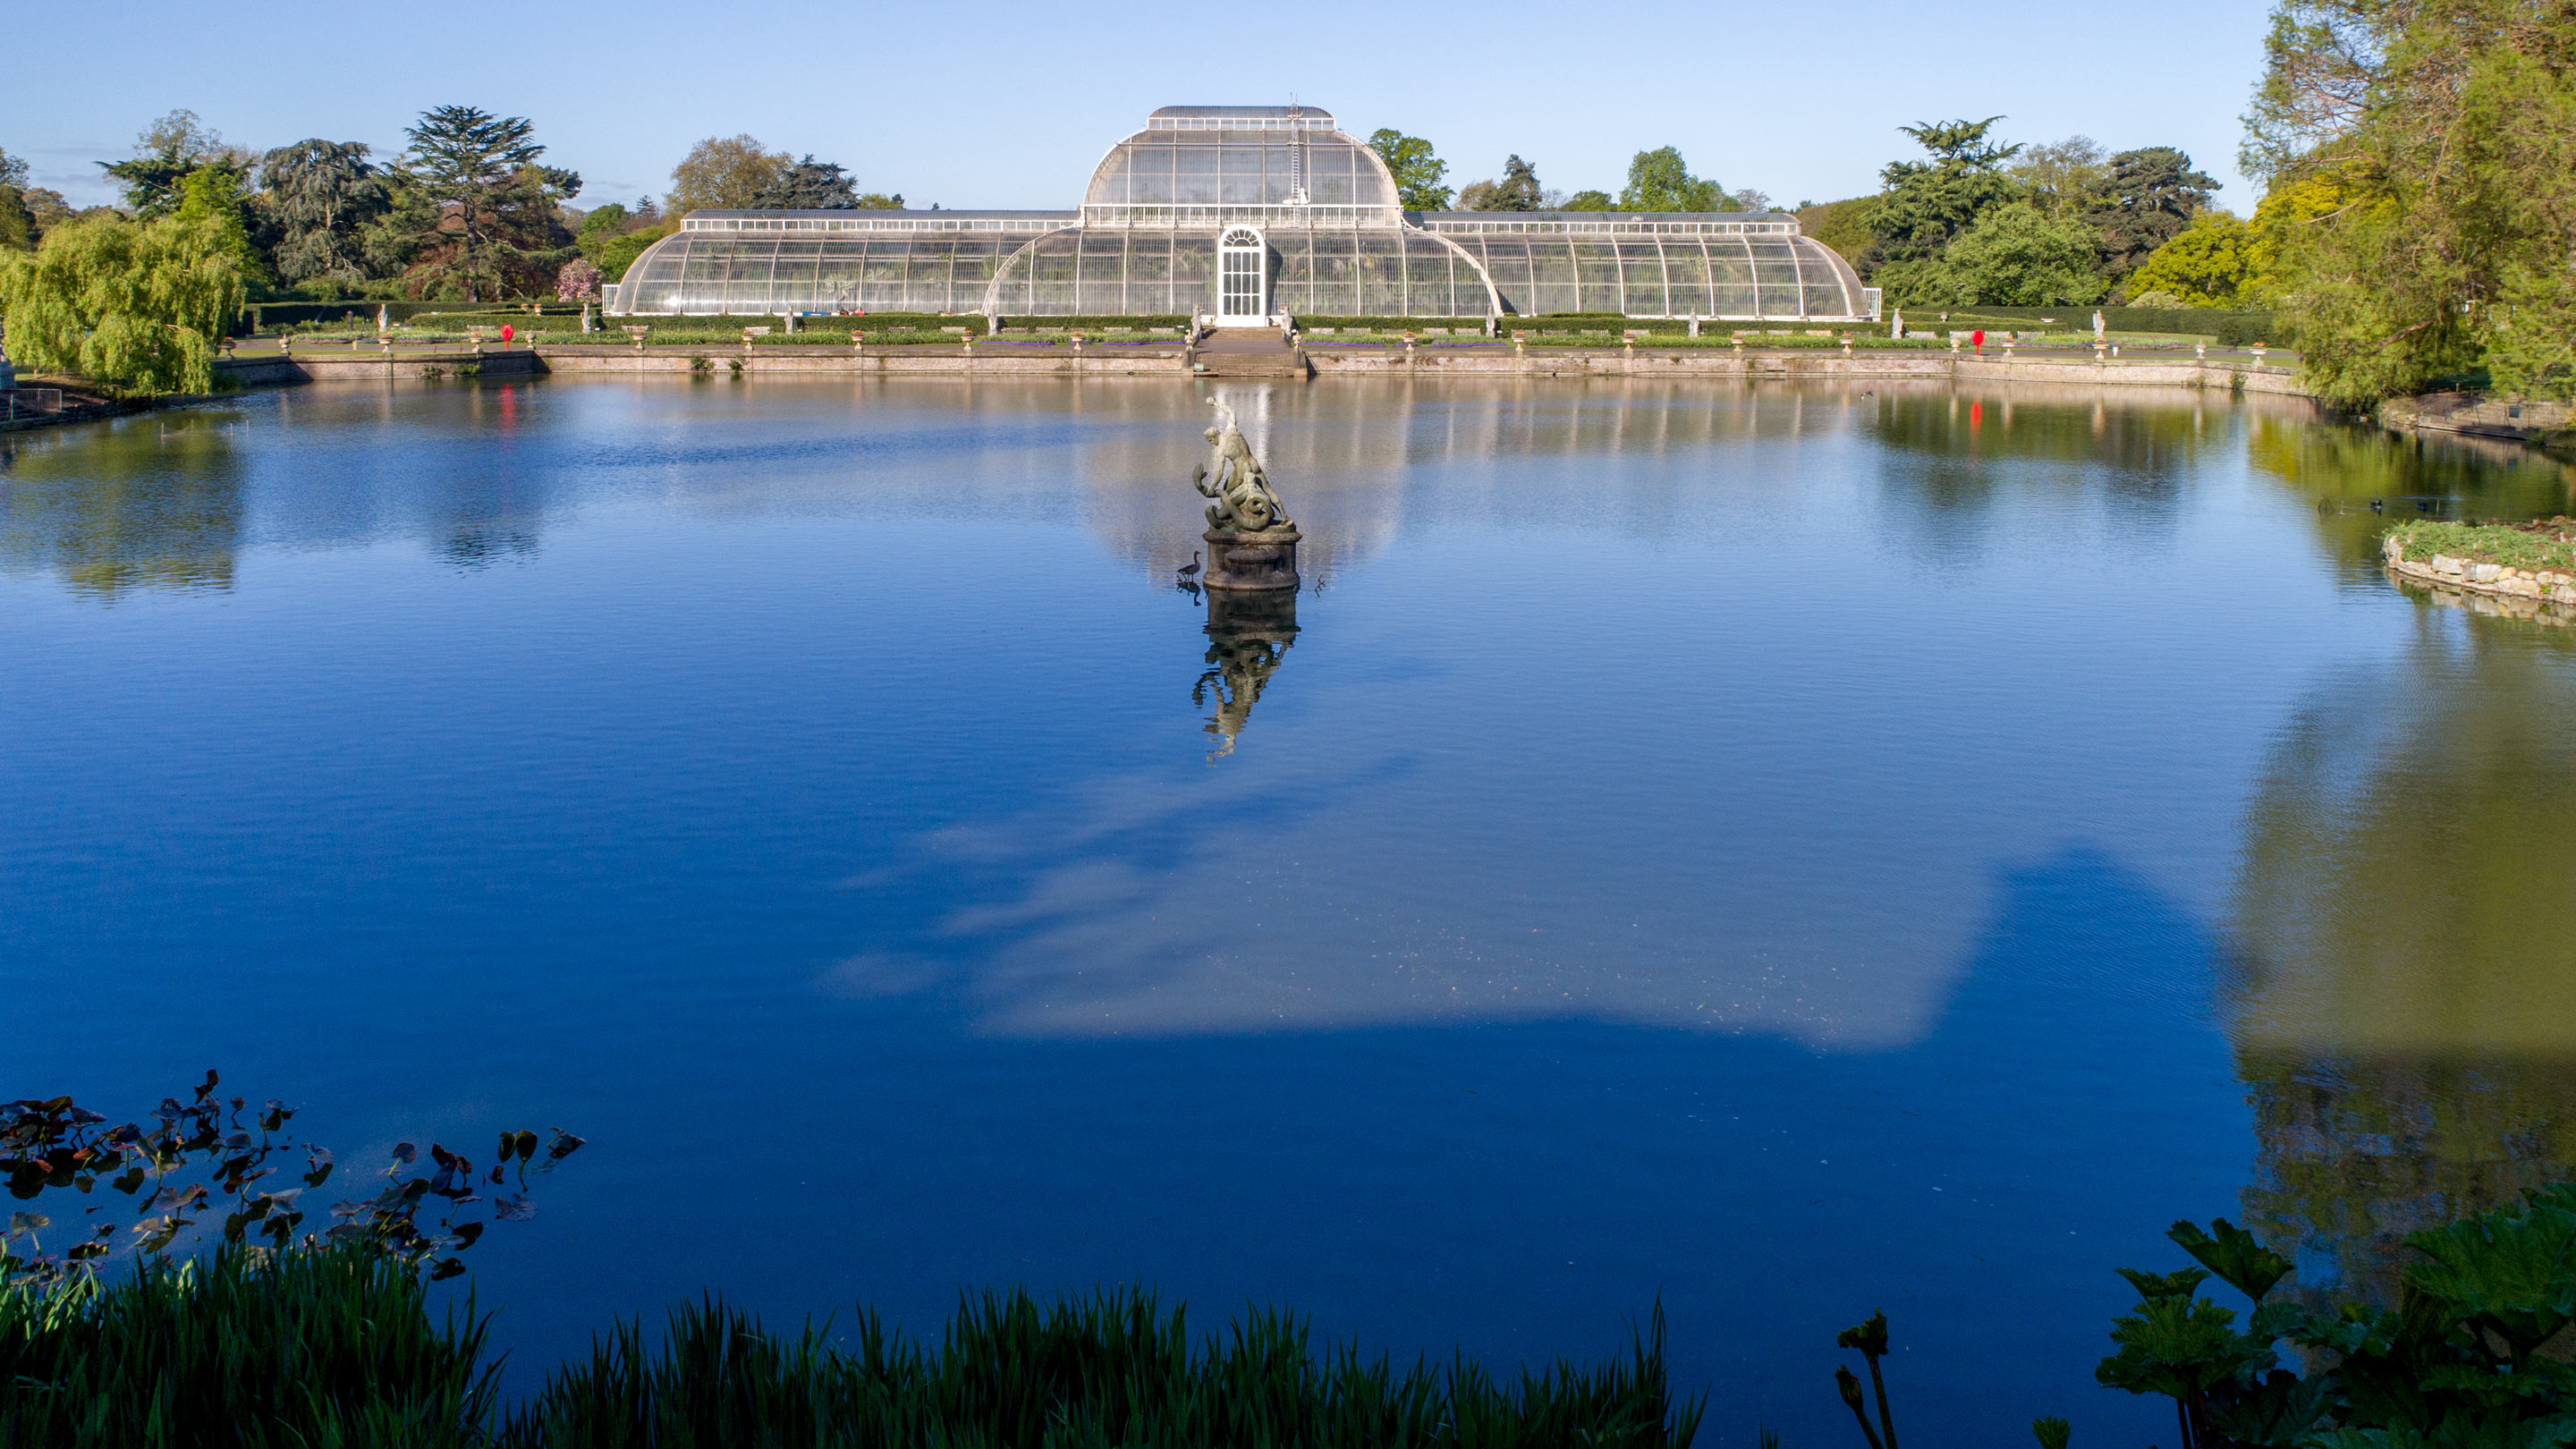 The Palm House at Kew